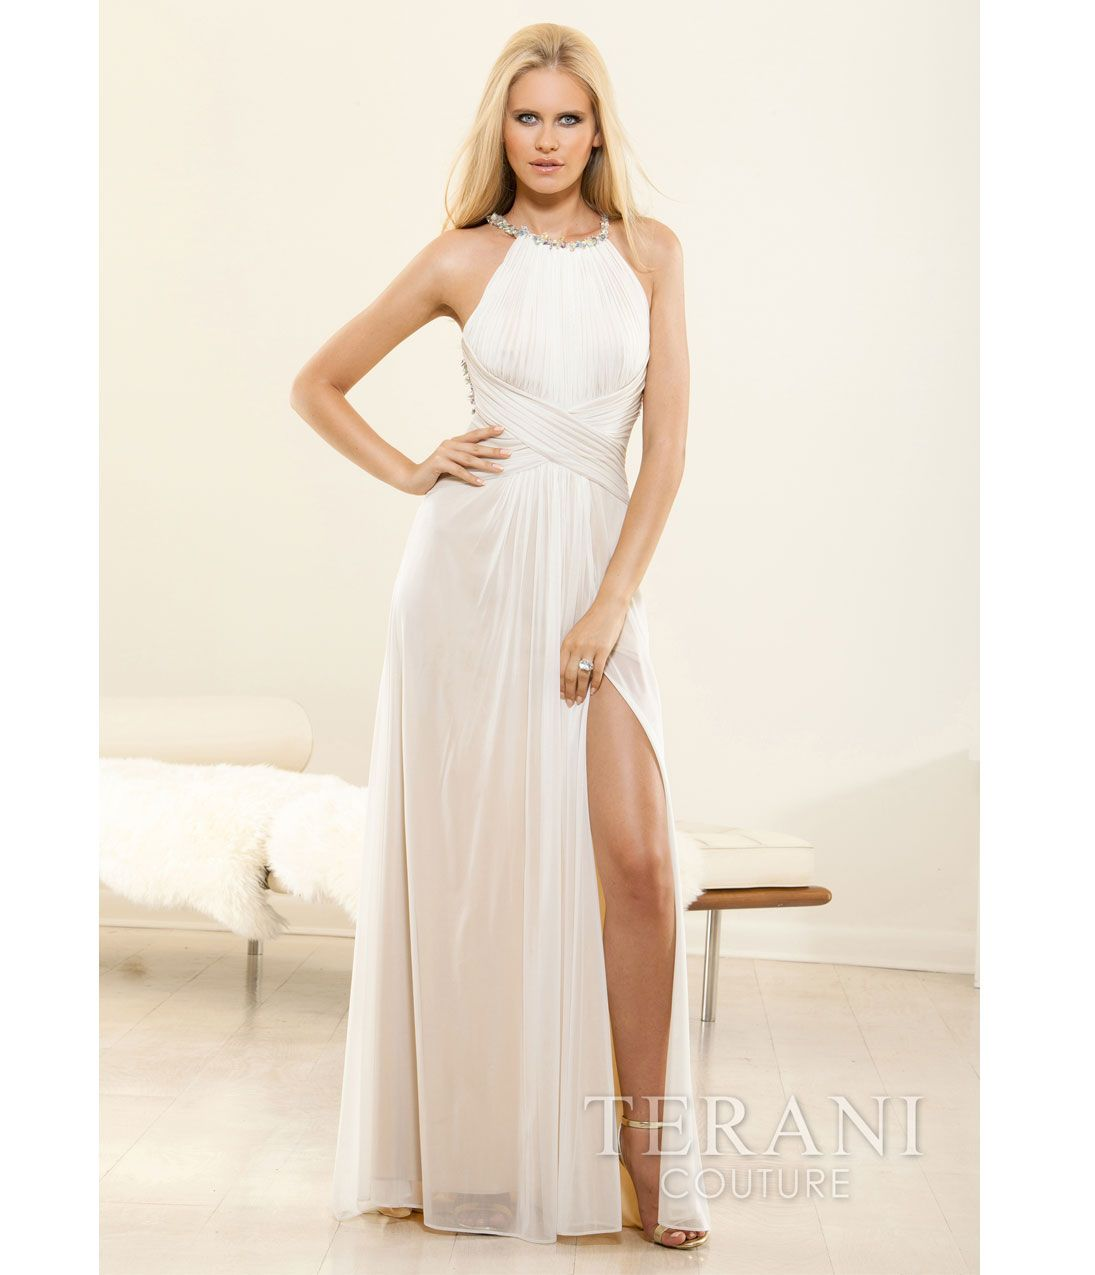 Terani 2014 Prom Dresses - Ivory & Nude Grecian Halter Prom Gown ...